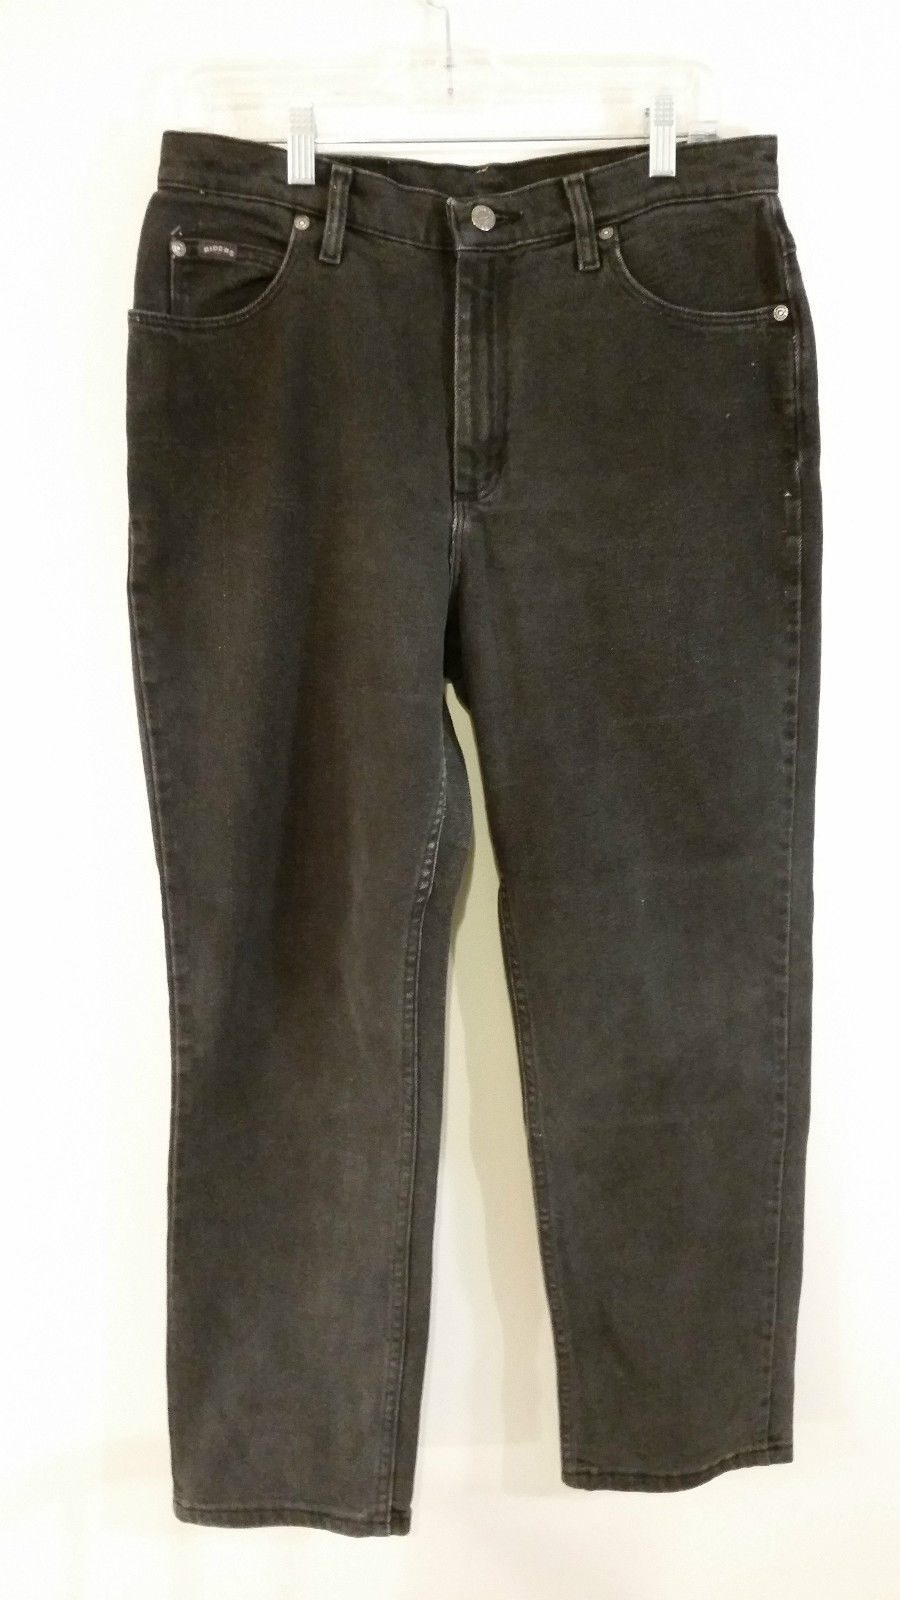 Dark Gray Jeans by Riders Good Condition Front and Back Pockets Size 12P